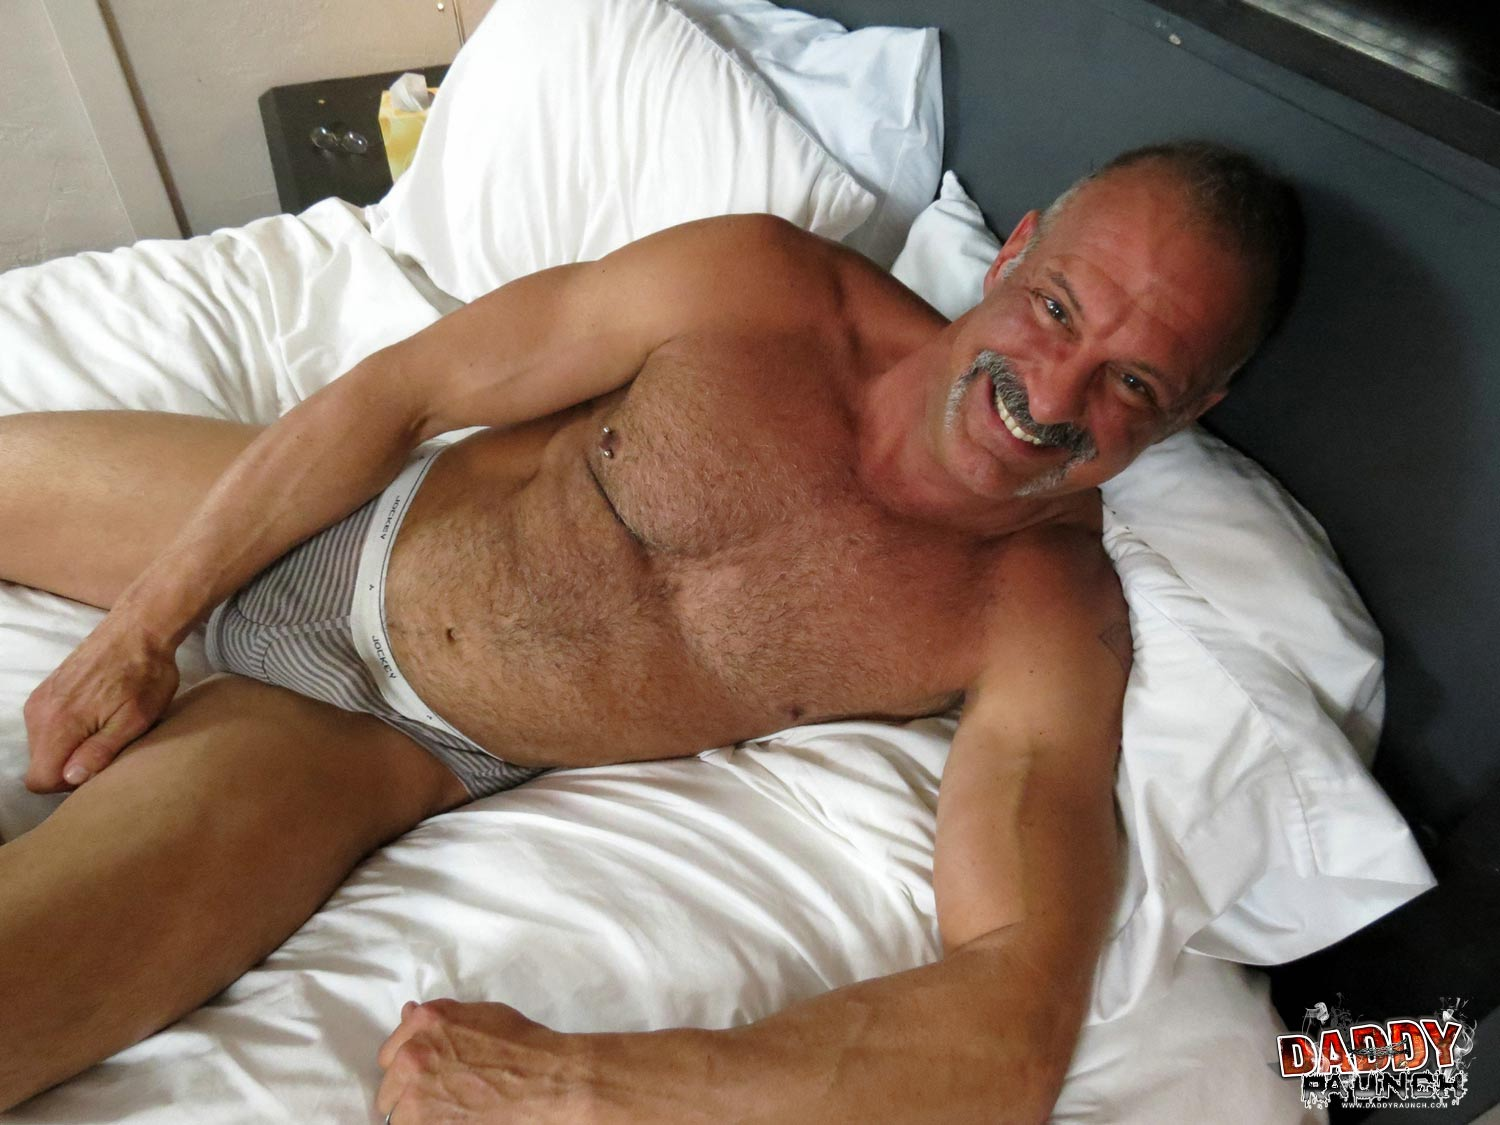 Pics of daddy jock gays having anal sex